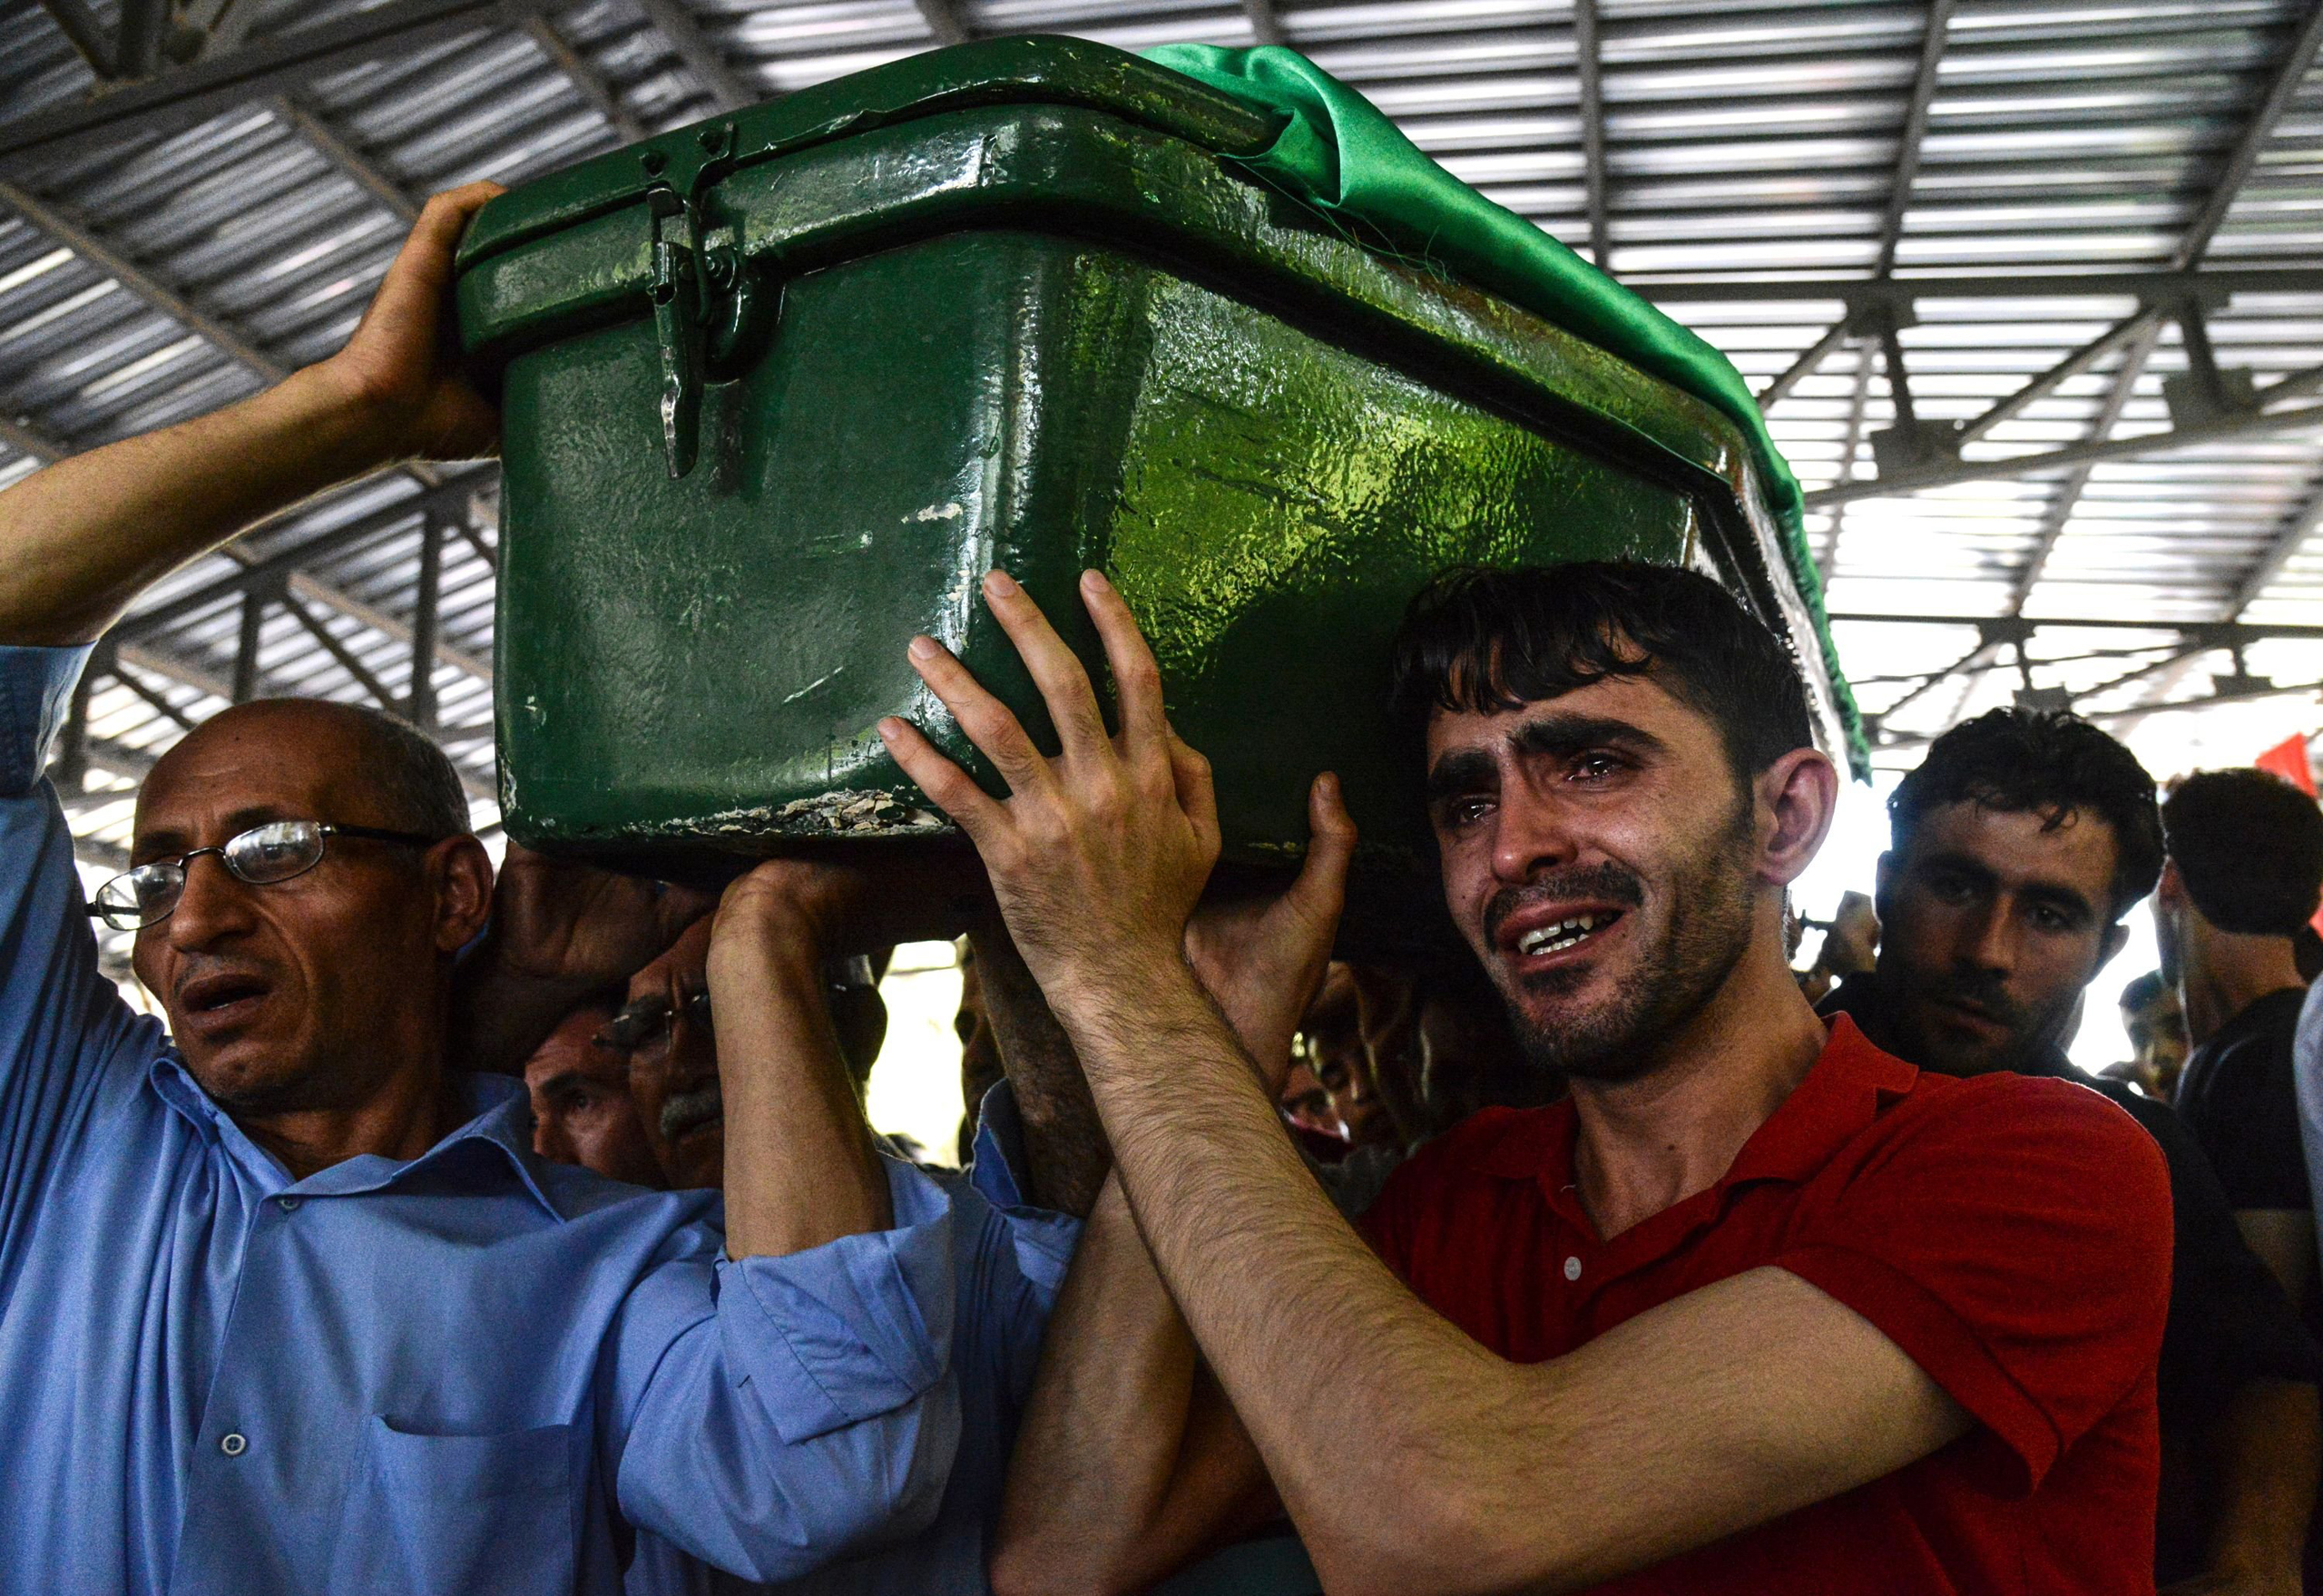 A man cries as he carries a coffin during a funeral for victims of last night's attack on a wedding party that left 50 dead in Gaziantep in southeastern Turkey near the Syrian border on Aug. 21, 2016.